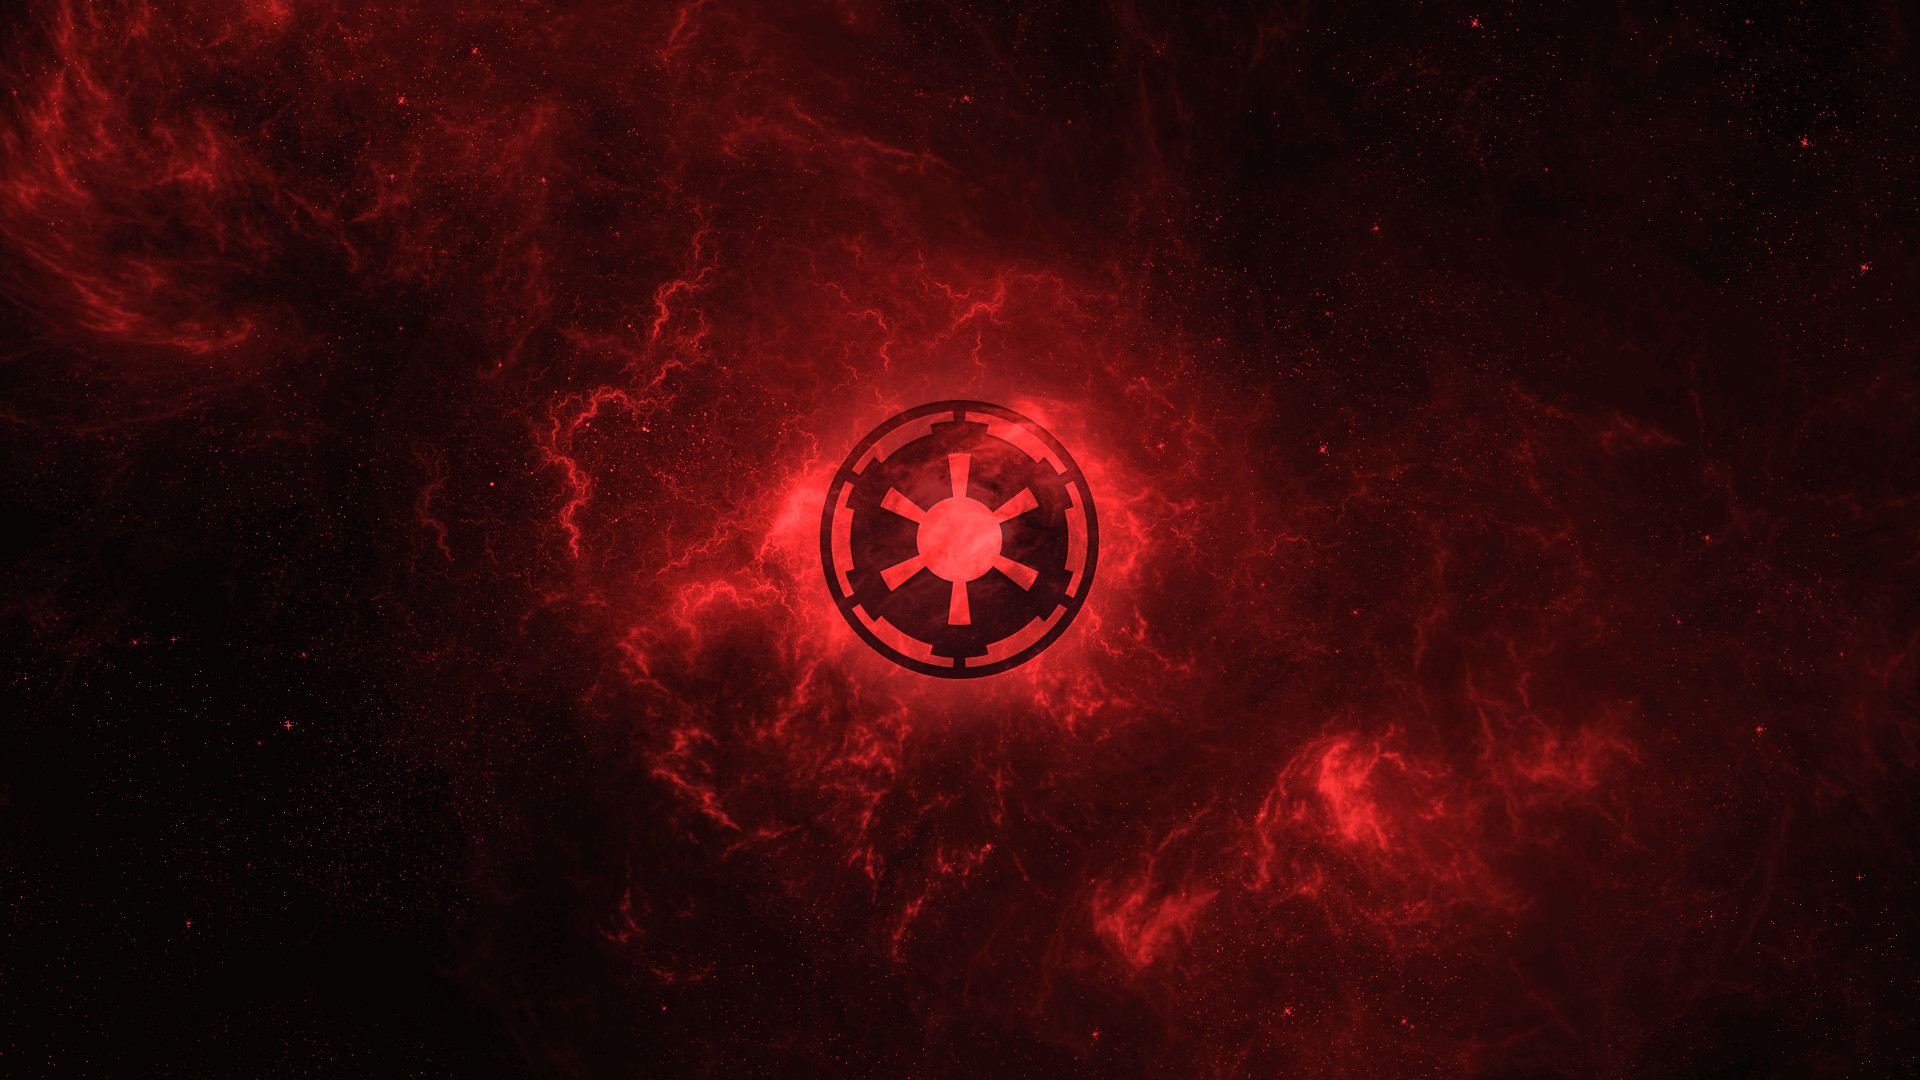 1920x1080 Star Wars Sith Empire Wallpapers High Quality Resolution On Wallpaper 1080p  HD